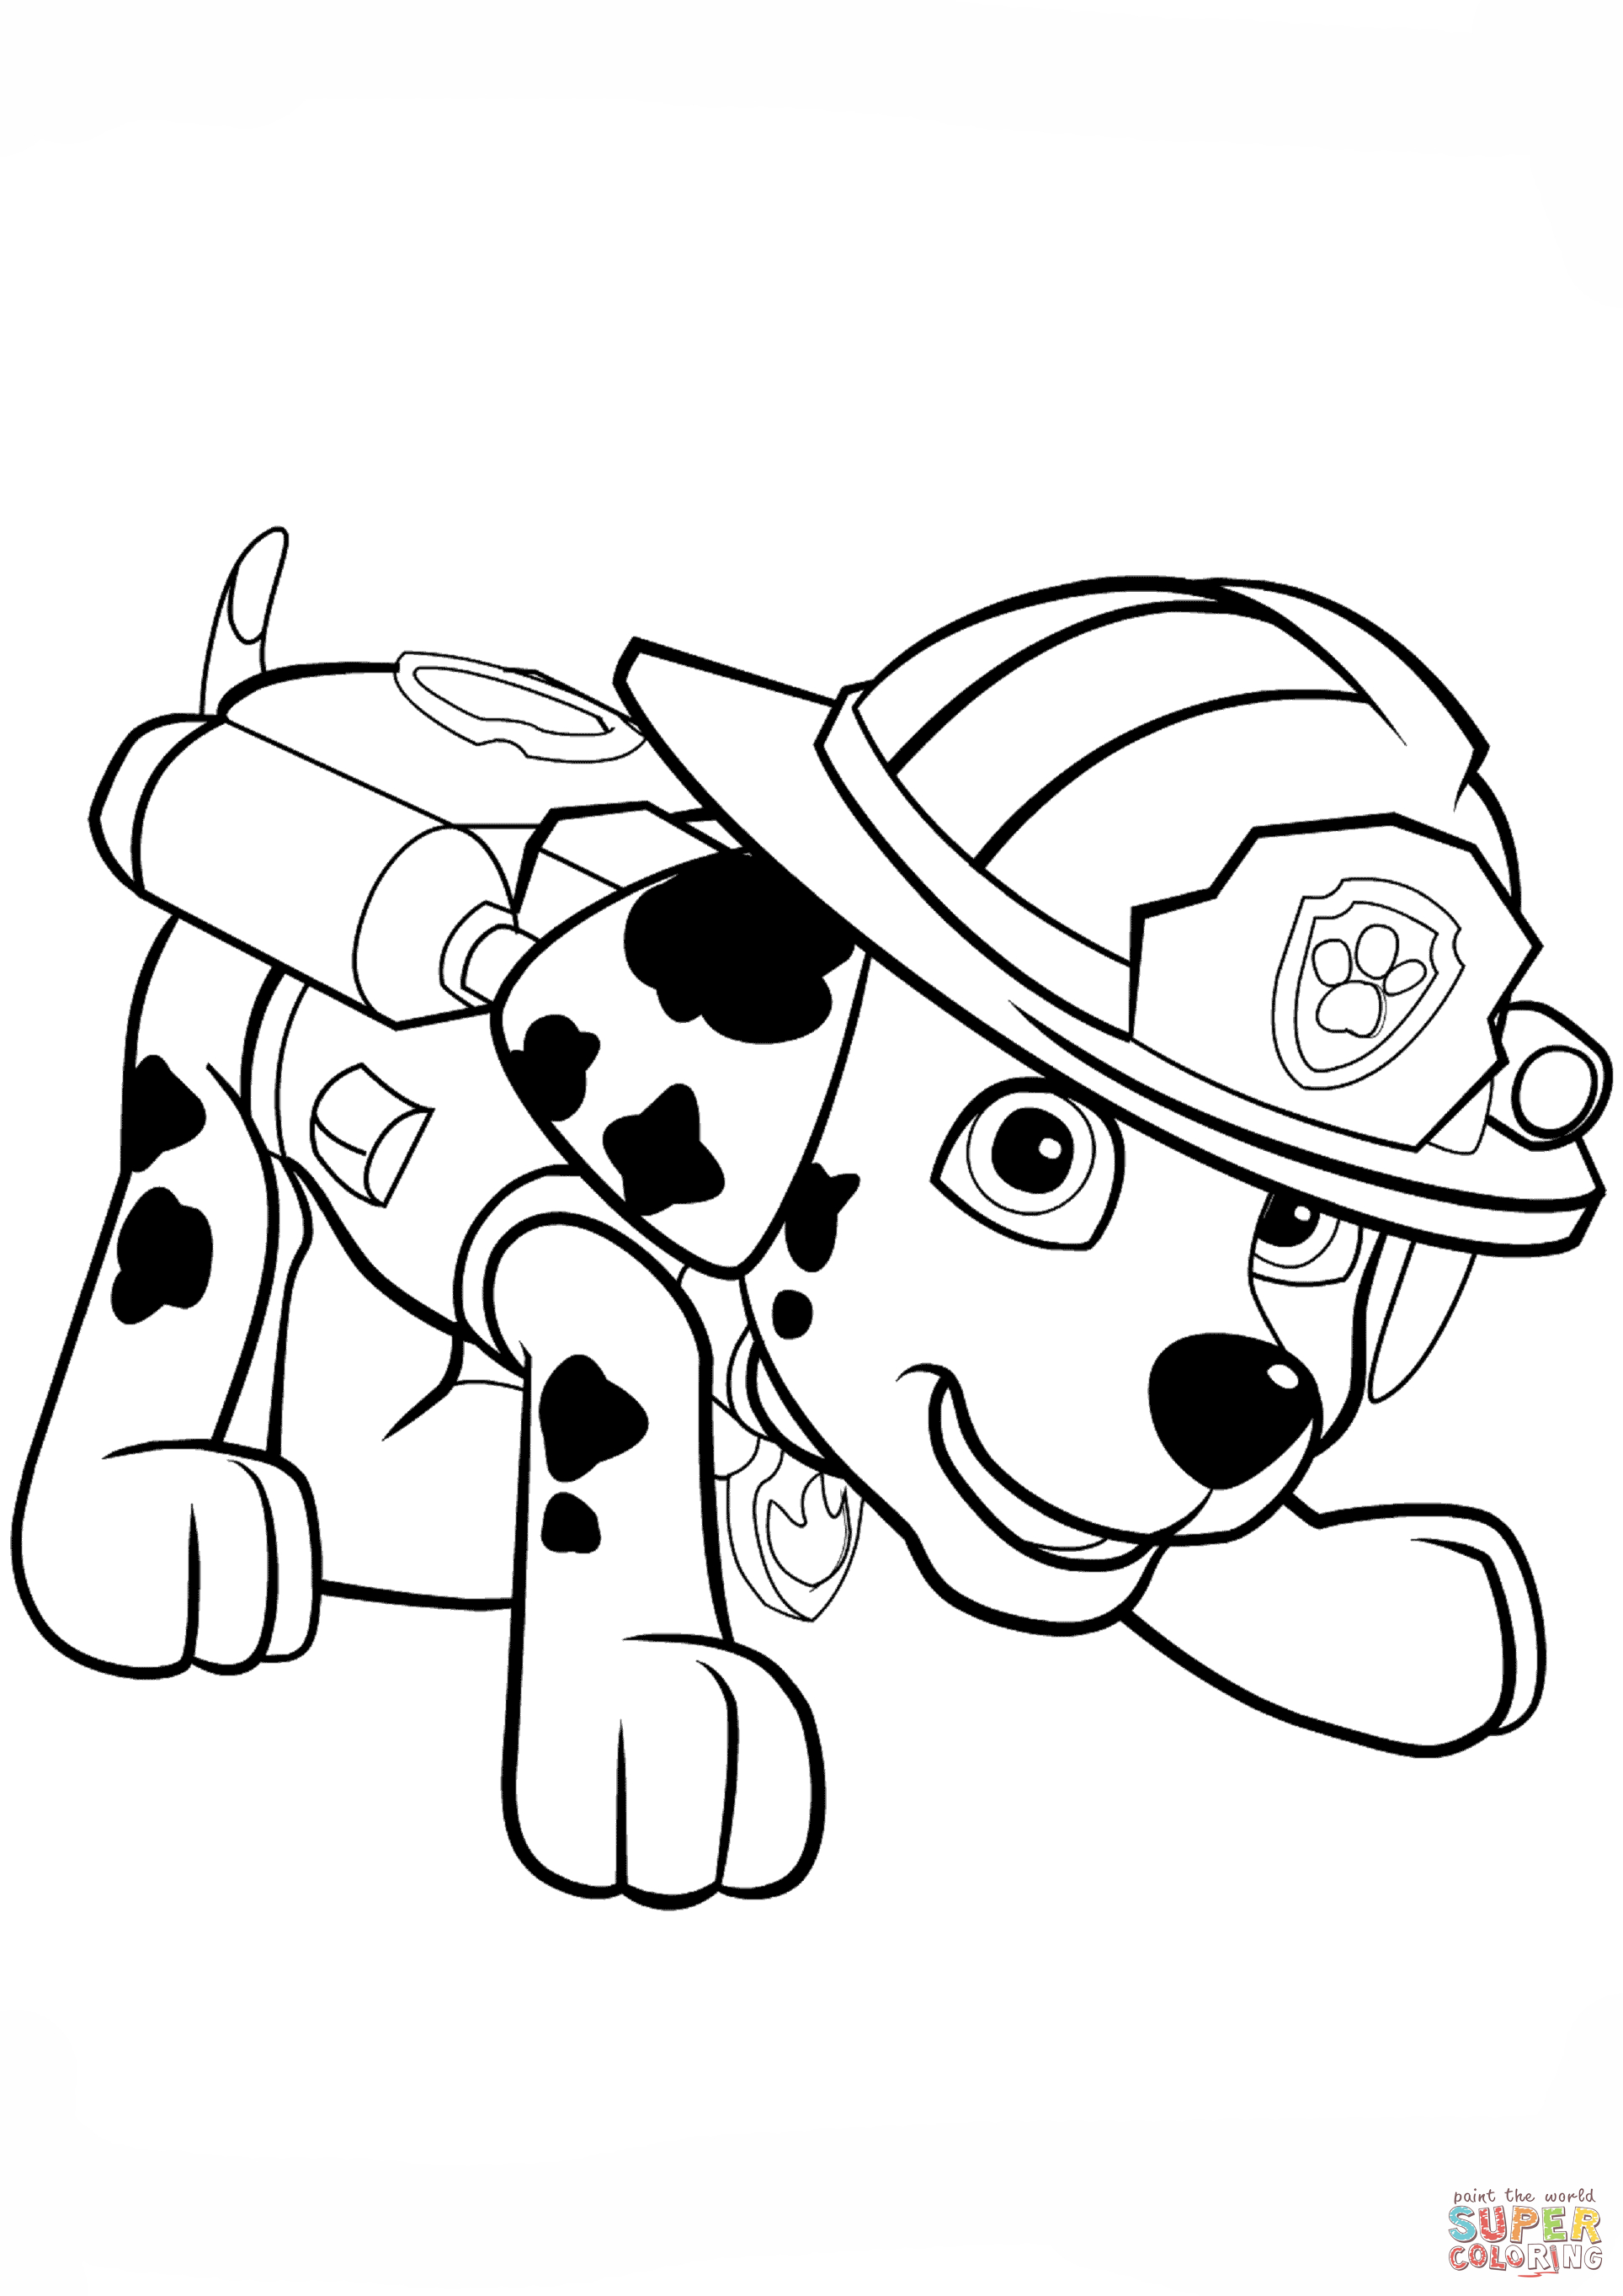 Little Puppy Coloring Pages Paw Patrol Marshall Puppy Coloring Page Free Printable Coloring Pages